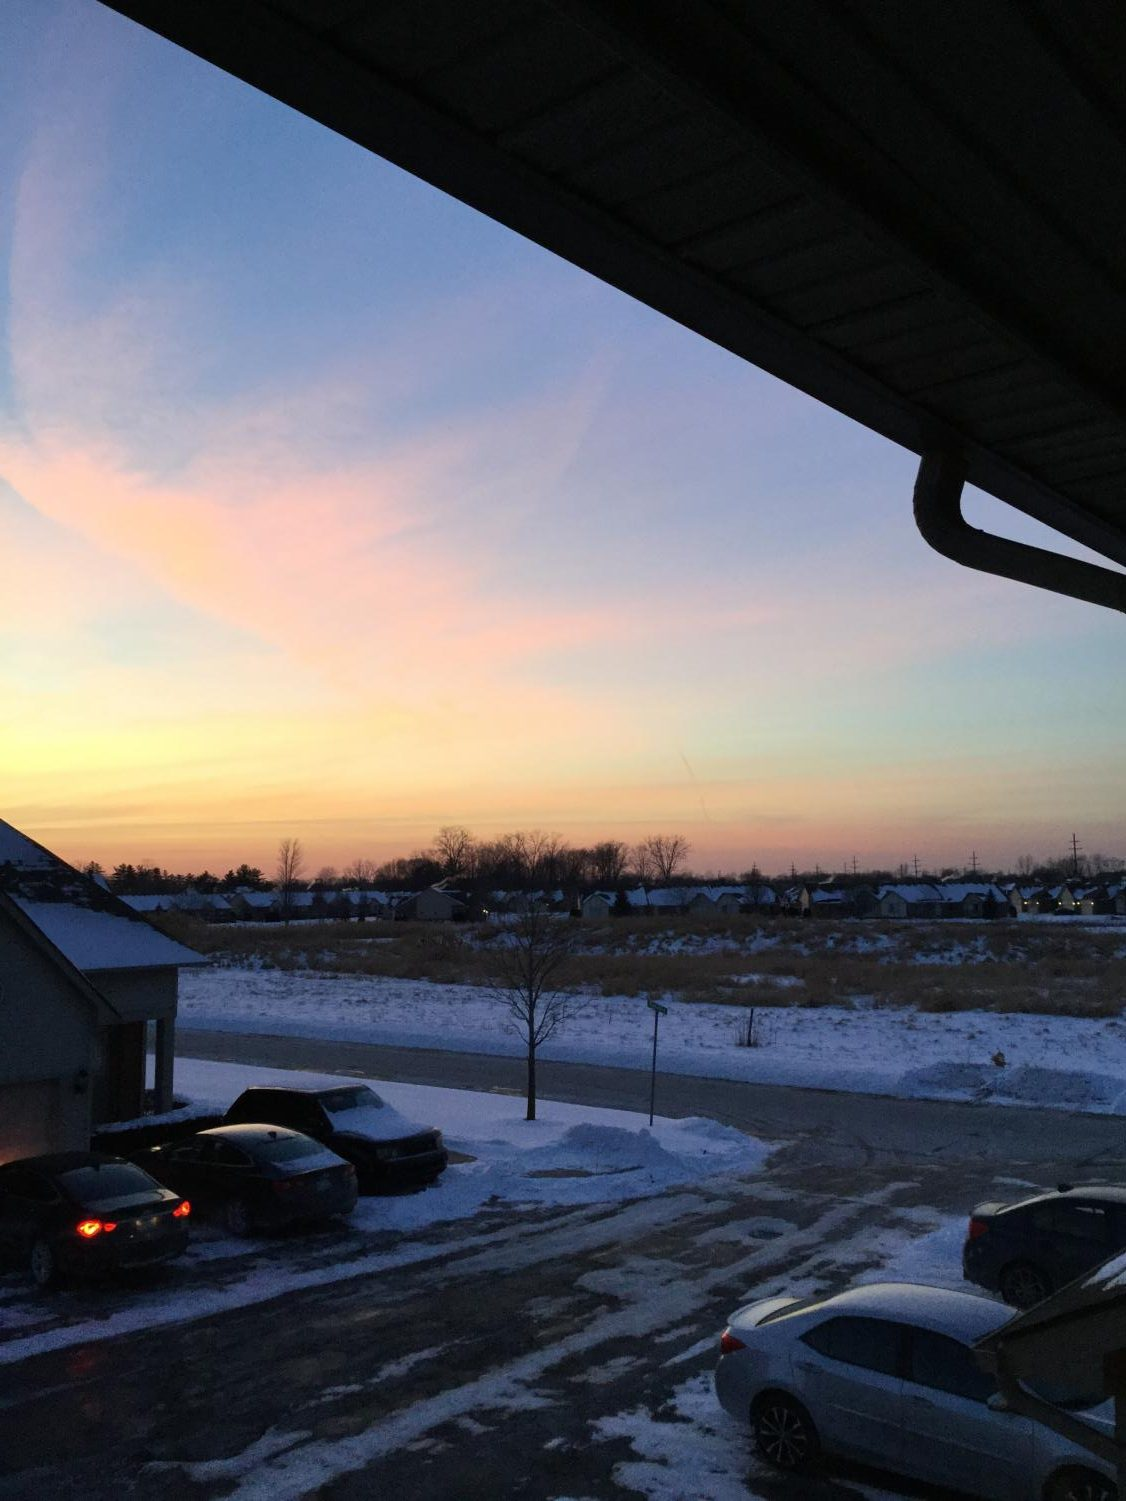 A late winter sunset. Photo credit: Dominic Comfort